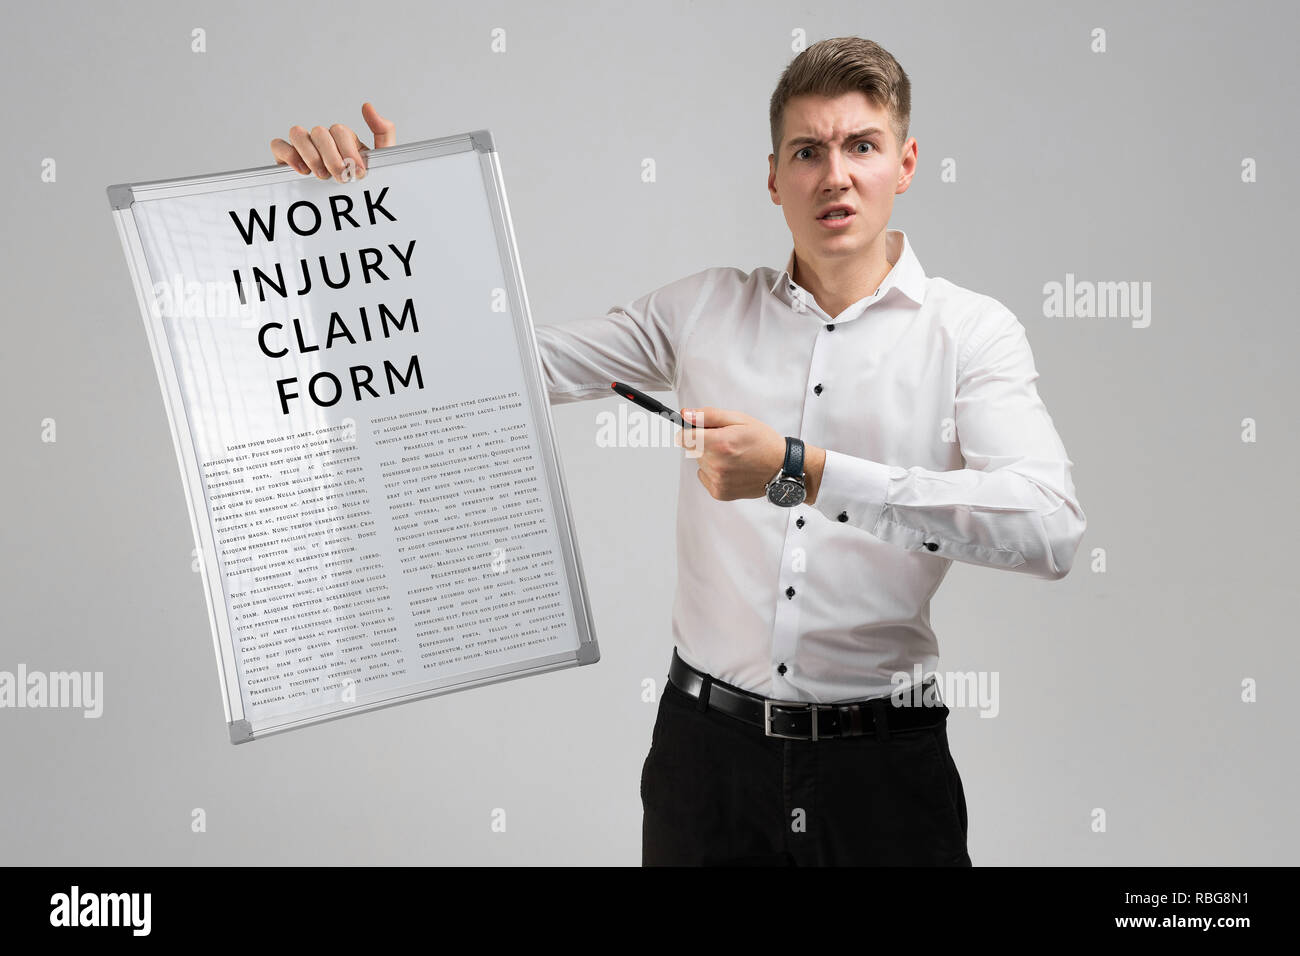 young man holding a form with a claim of injury at work isolated on a light background - Stock Image